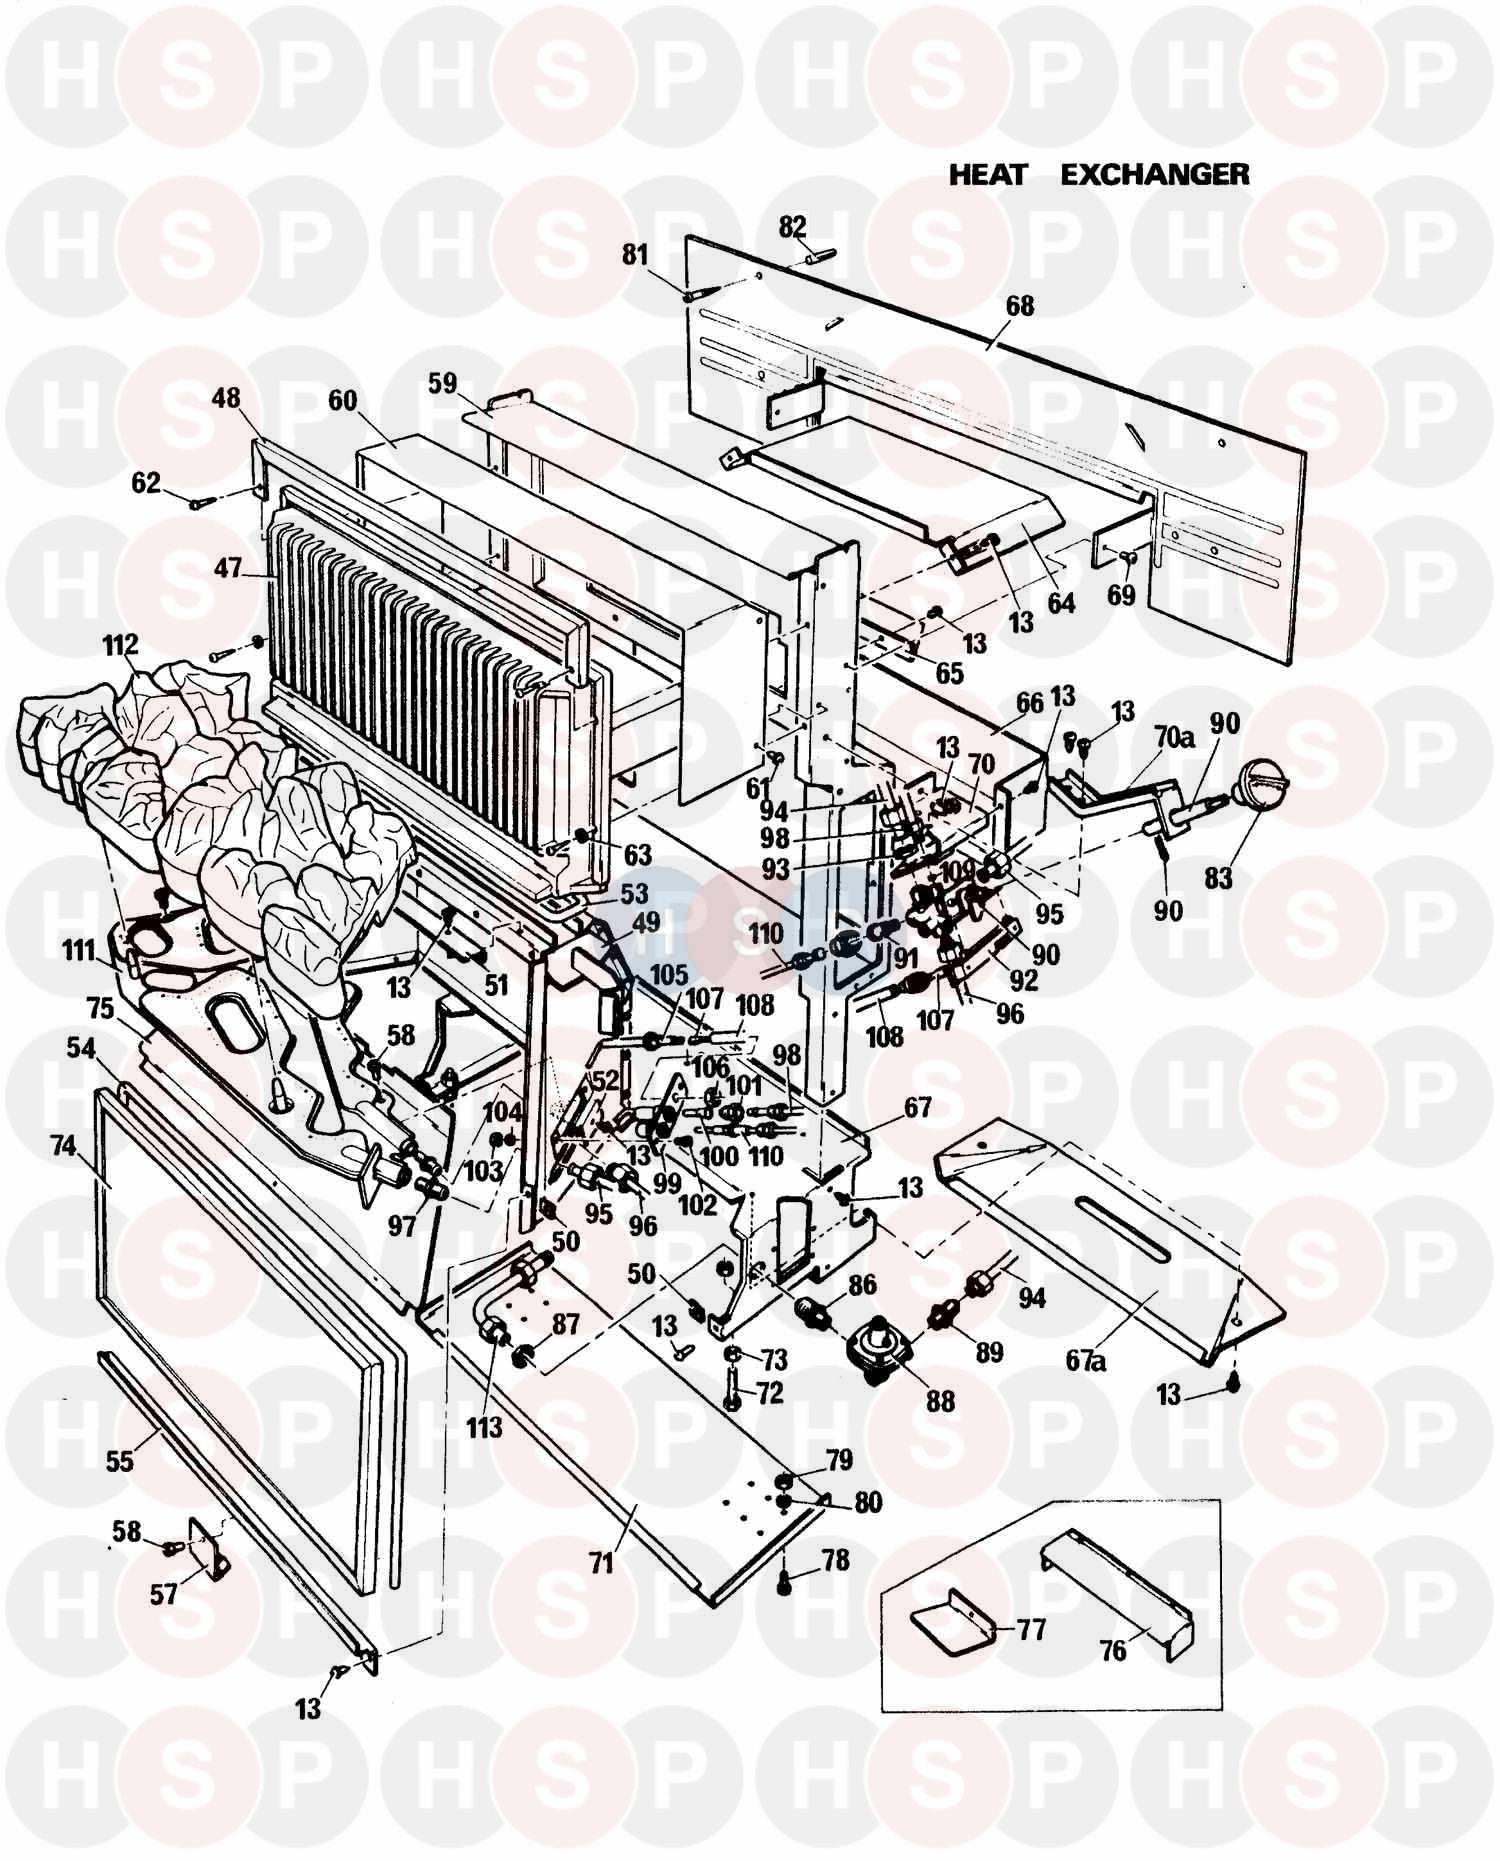 Pa105 Modine Heater Wiring Diagrams. . Wiring Diagram